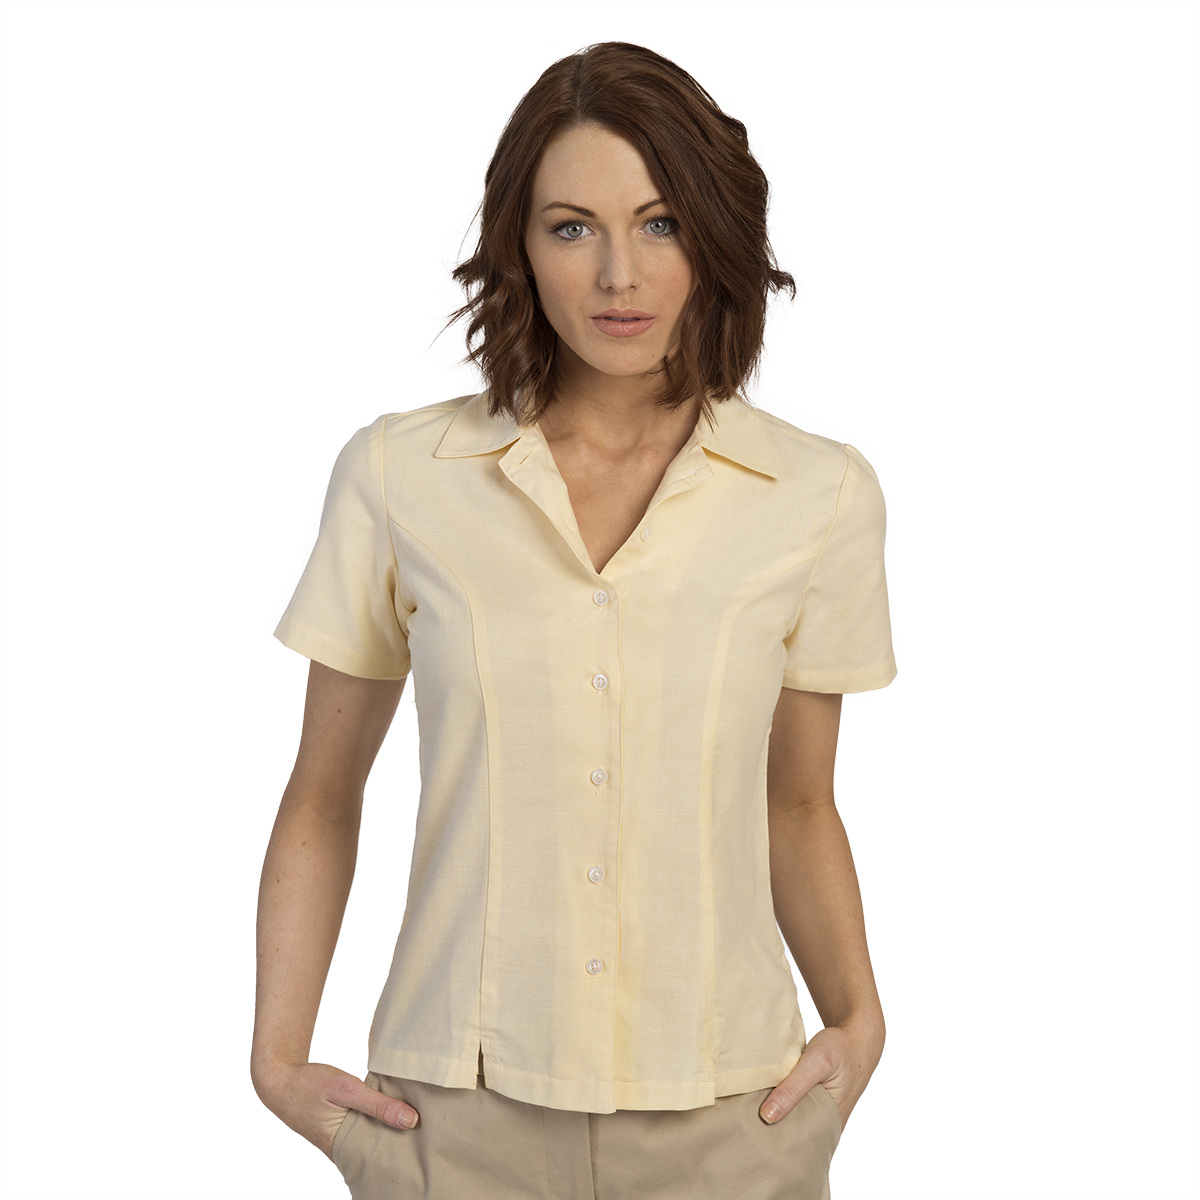 7c58af72aac Women s Oxford Style Short Sleeve Blouse – Executive Apparel